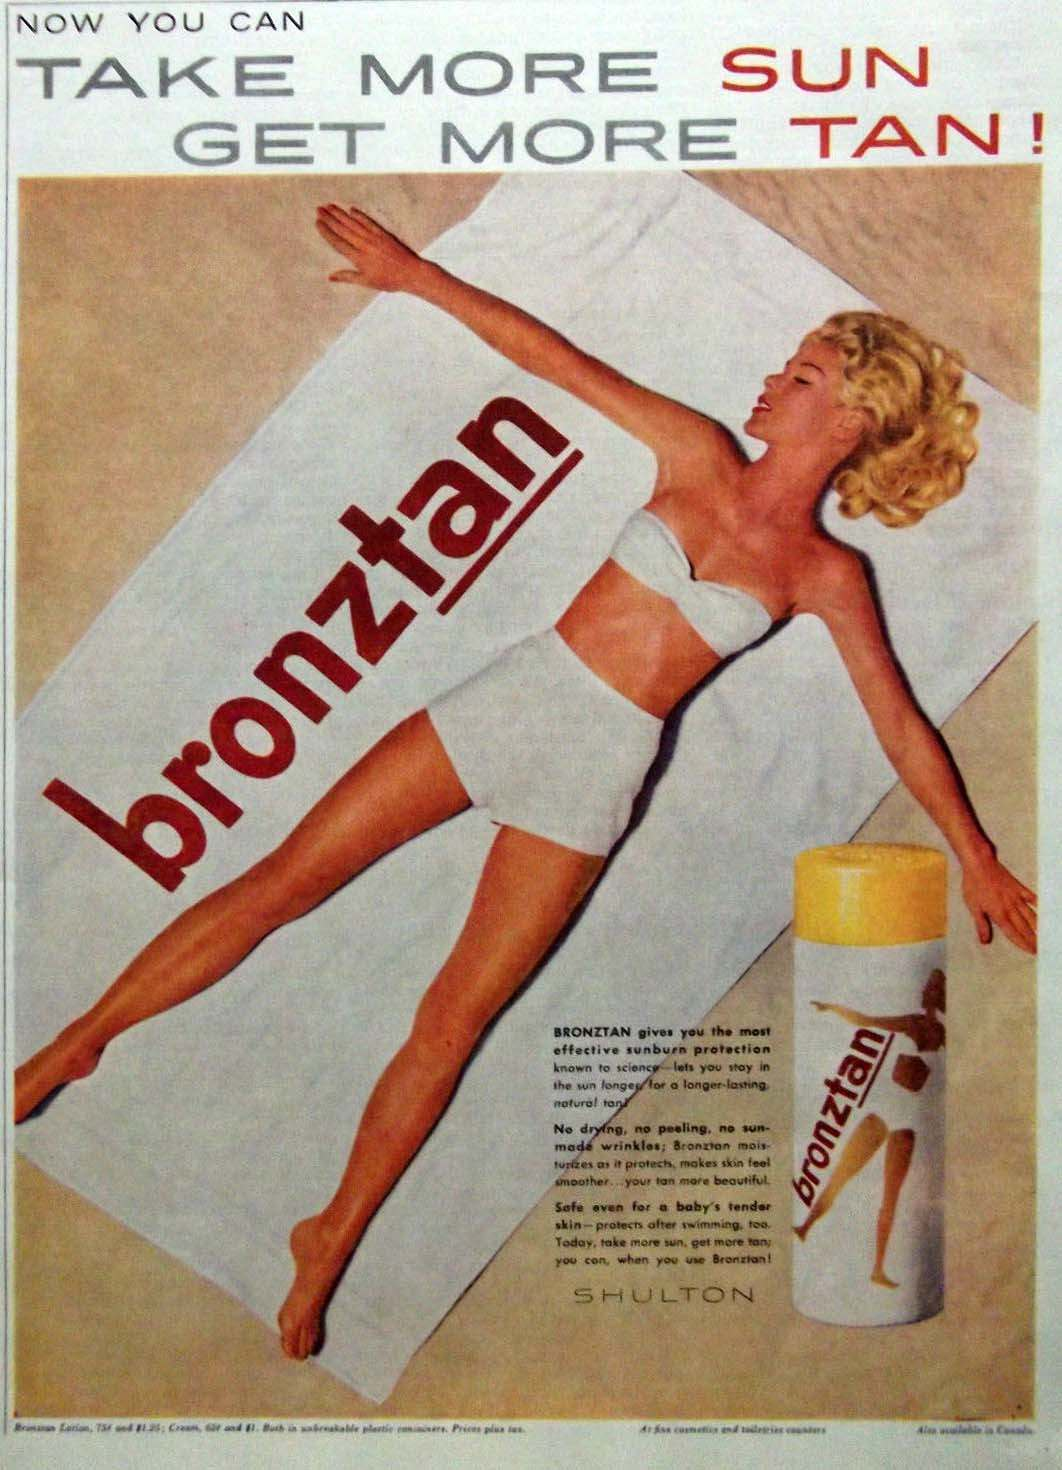 Let the Sunshine In 1960s70s Adverts in the Golden Age